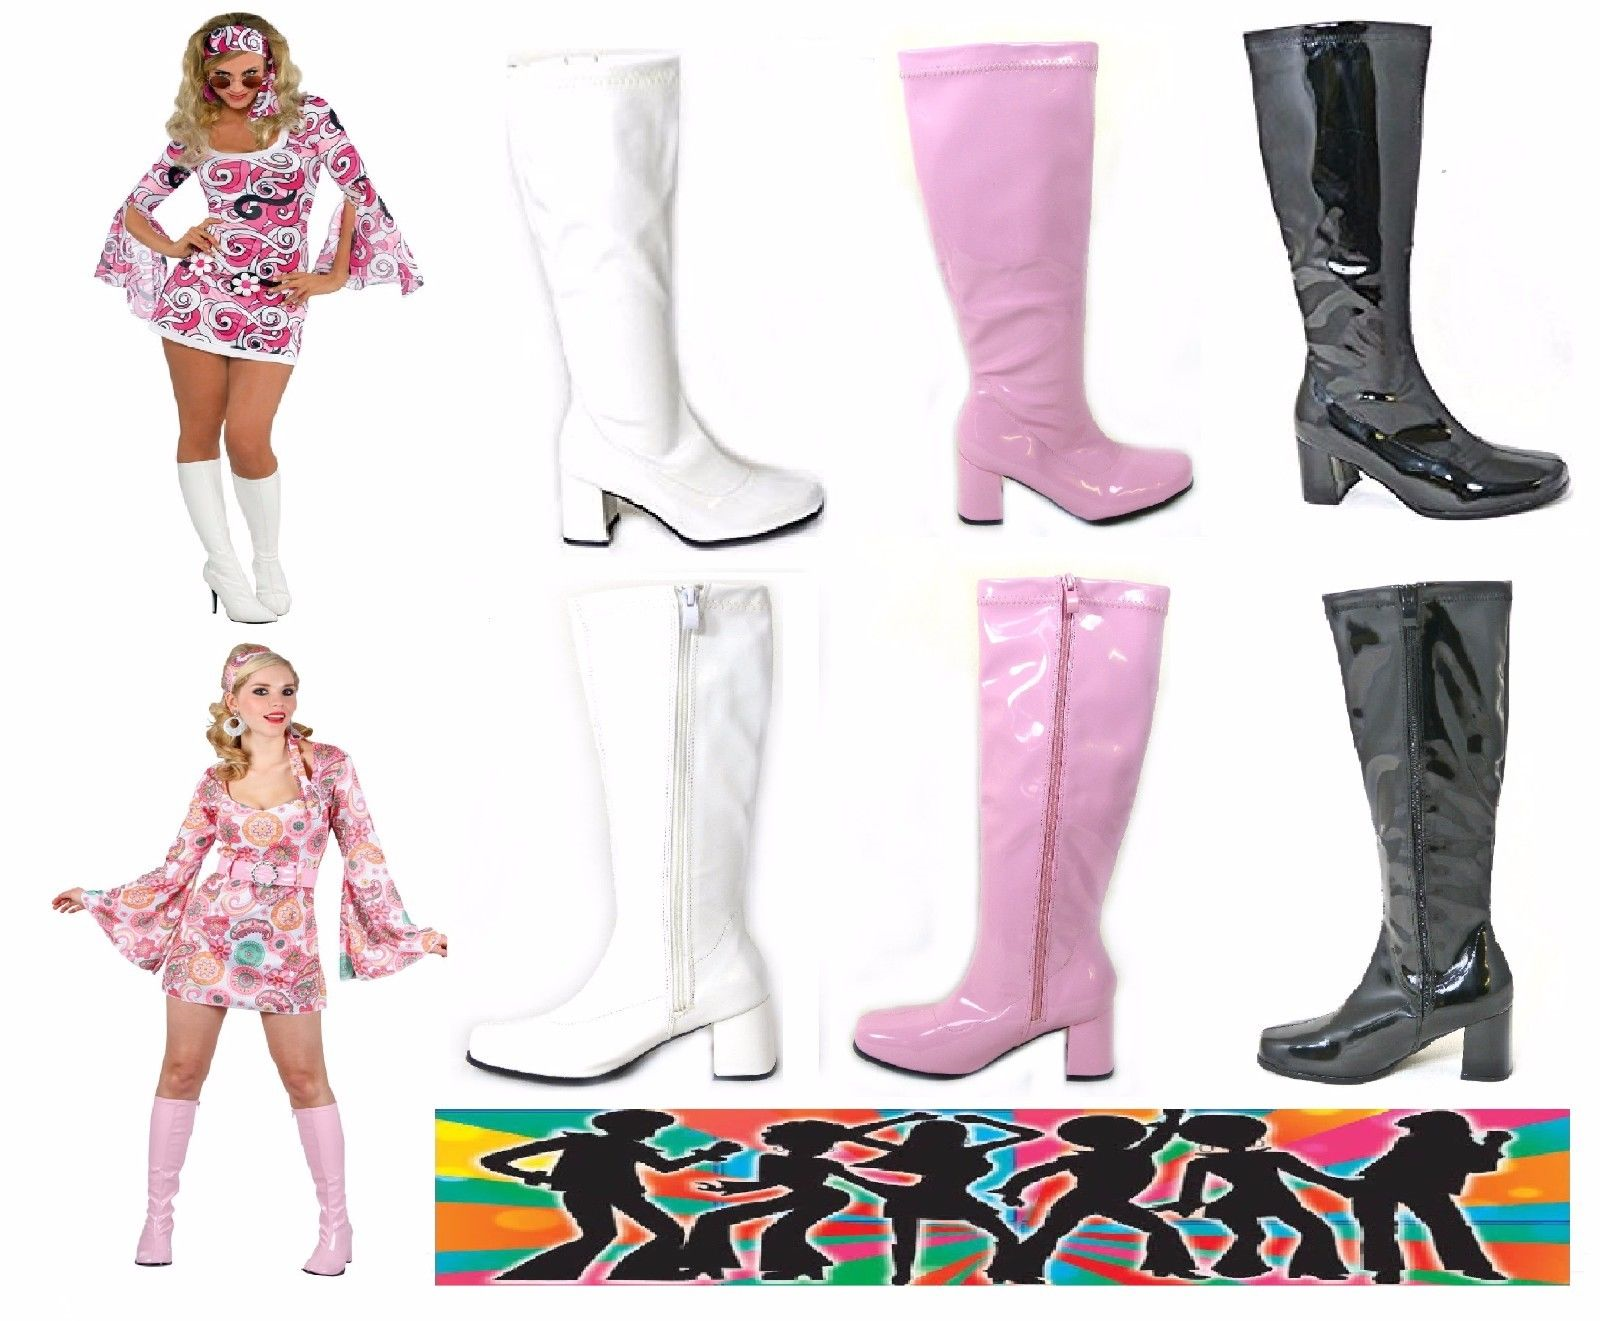 New Mujer Ladies Vintage Fancy Dress Party GO Retro GO botas 60s 70s Retro GO Talla 3-12 9a02db